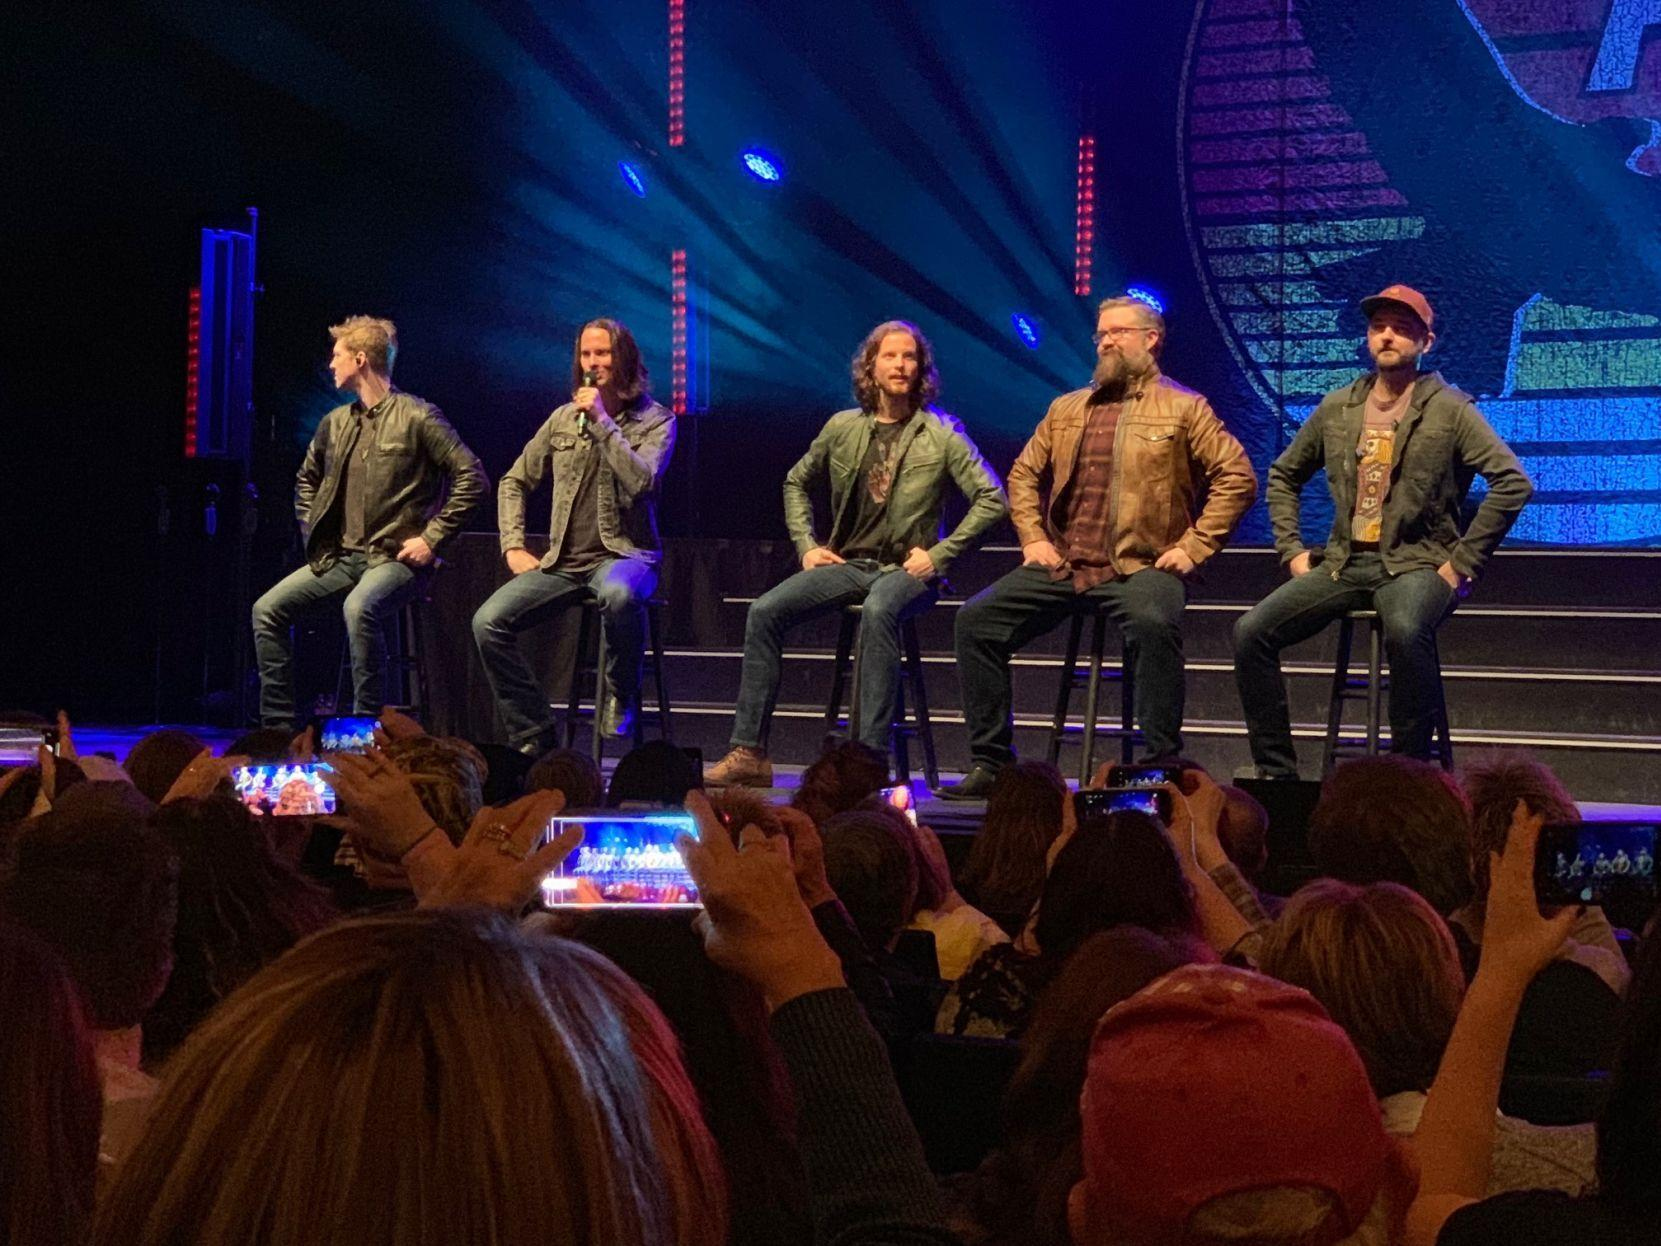 Review Home Free Covers All The Bases At Orpheum Concert Music Siouxcityjournal Com